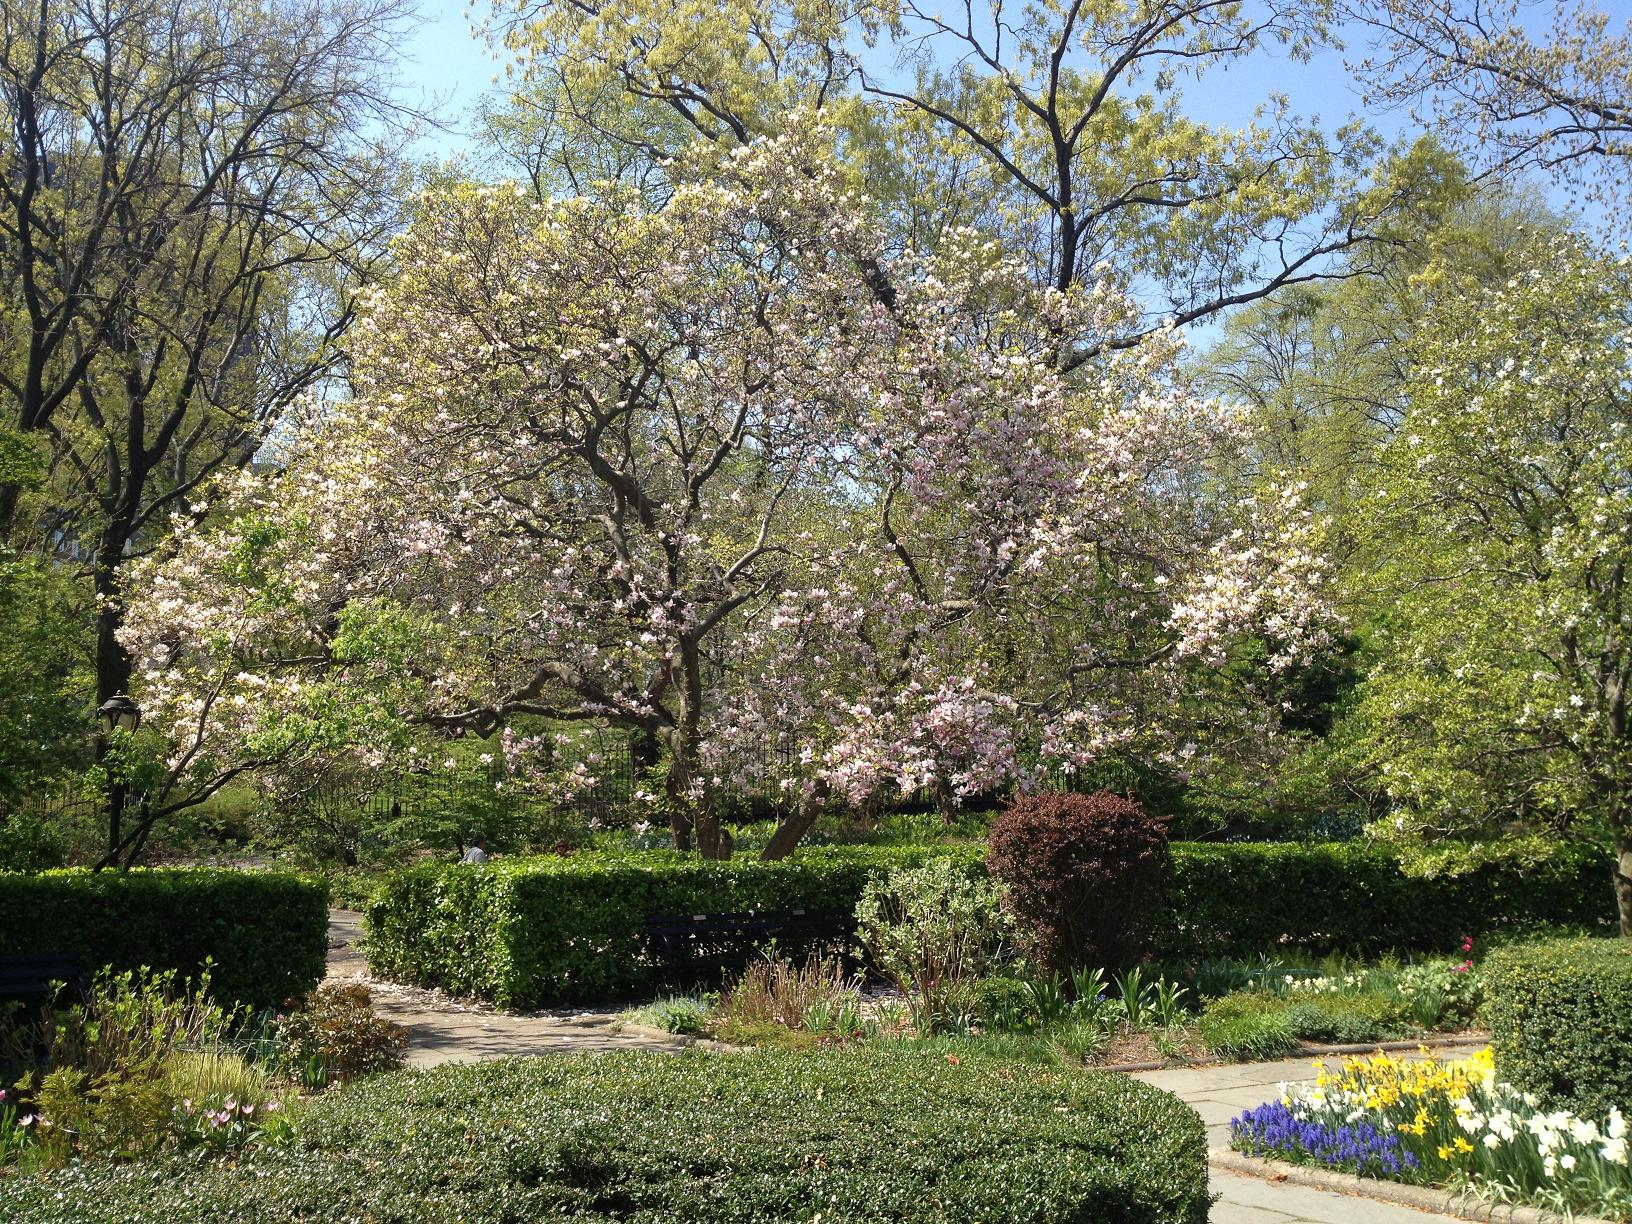 Central Park Conservancy Garden 2